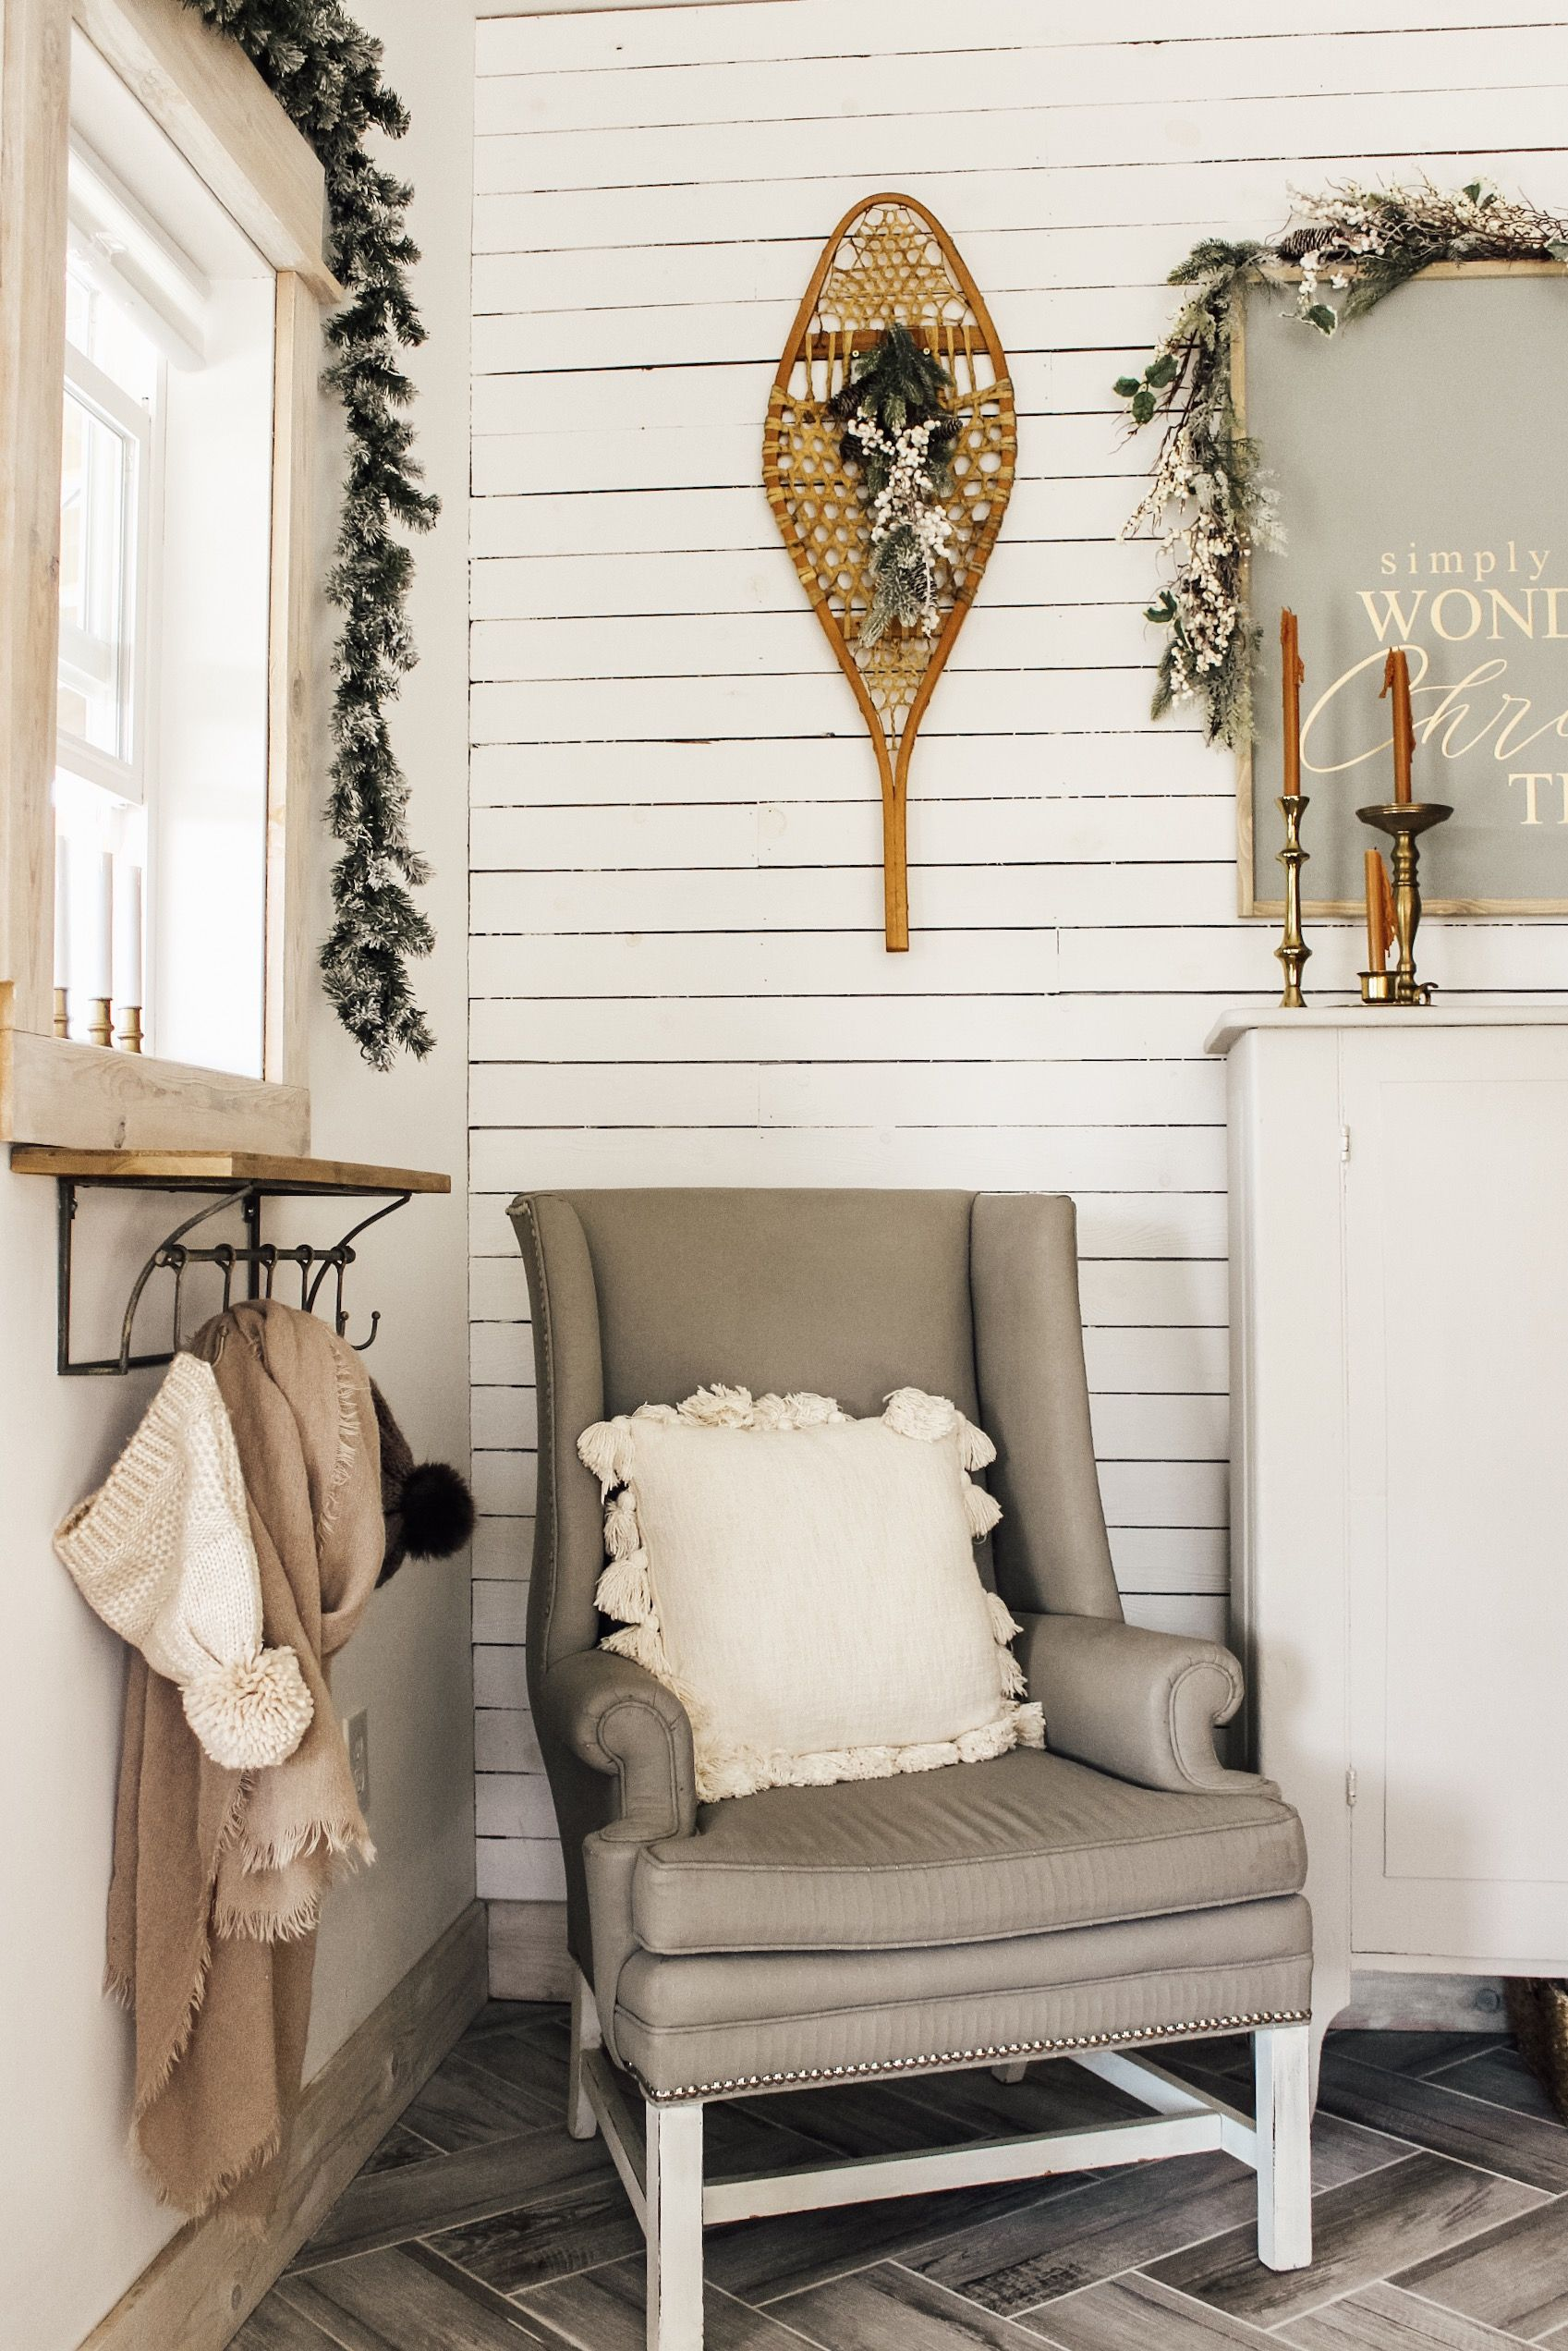 It may be snowing outside but it's sure cozy at Fletcher Creek Cottage!  #cozycottage #christmasdecor #blog #homedecorblog #herringbone #christmasideas #holidaydecor